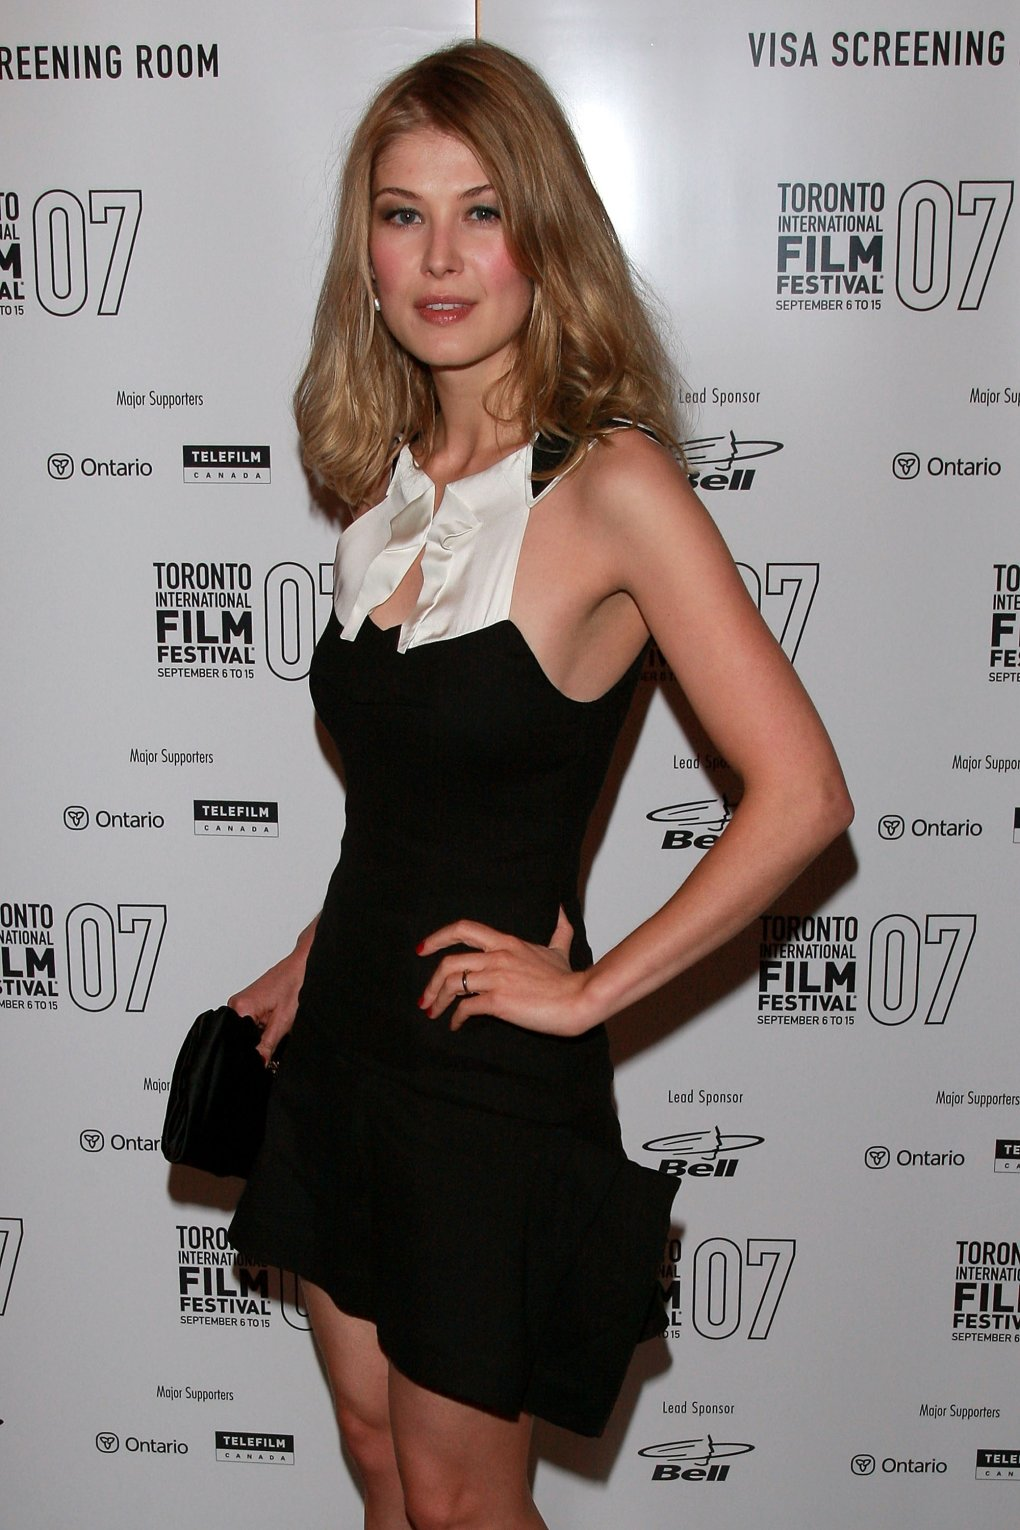 70+ Hot Pictures Of Rosamund Pike Are Pure Bliss For Fans